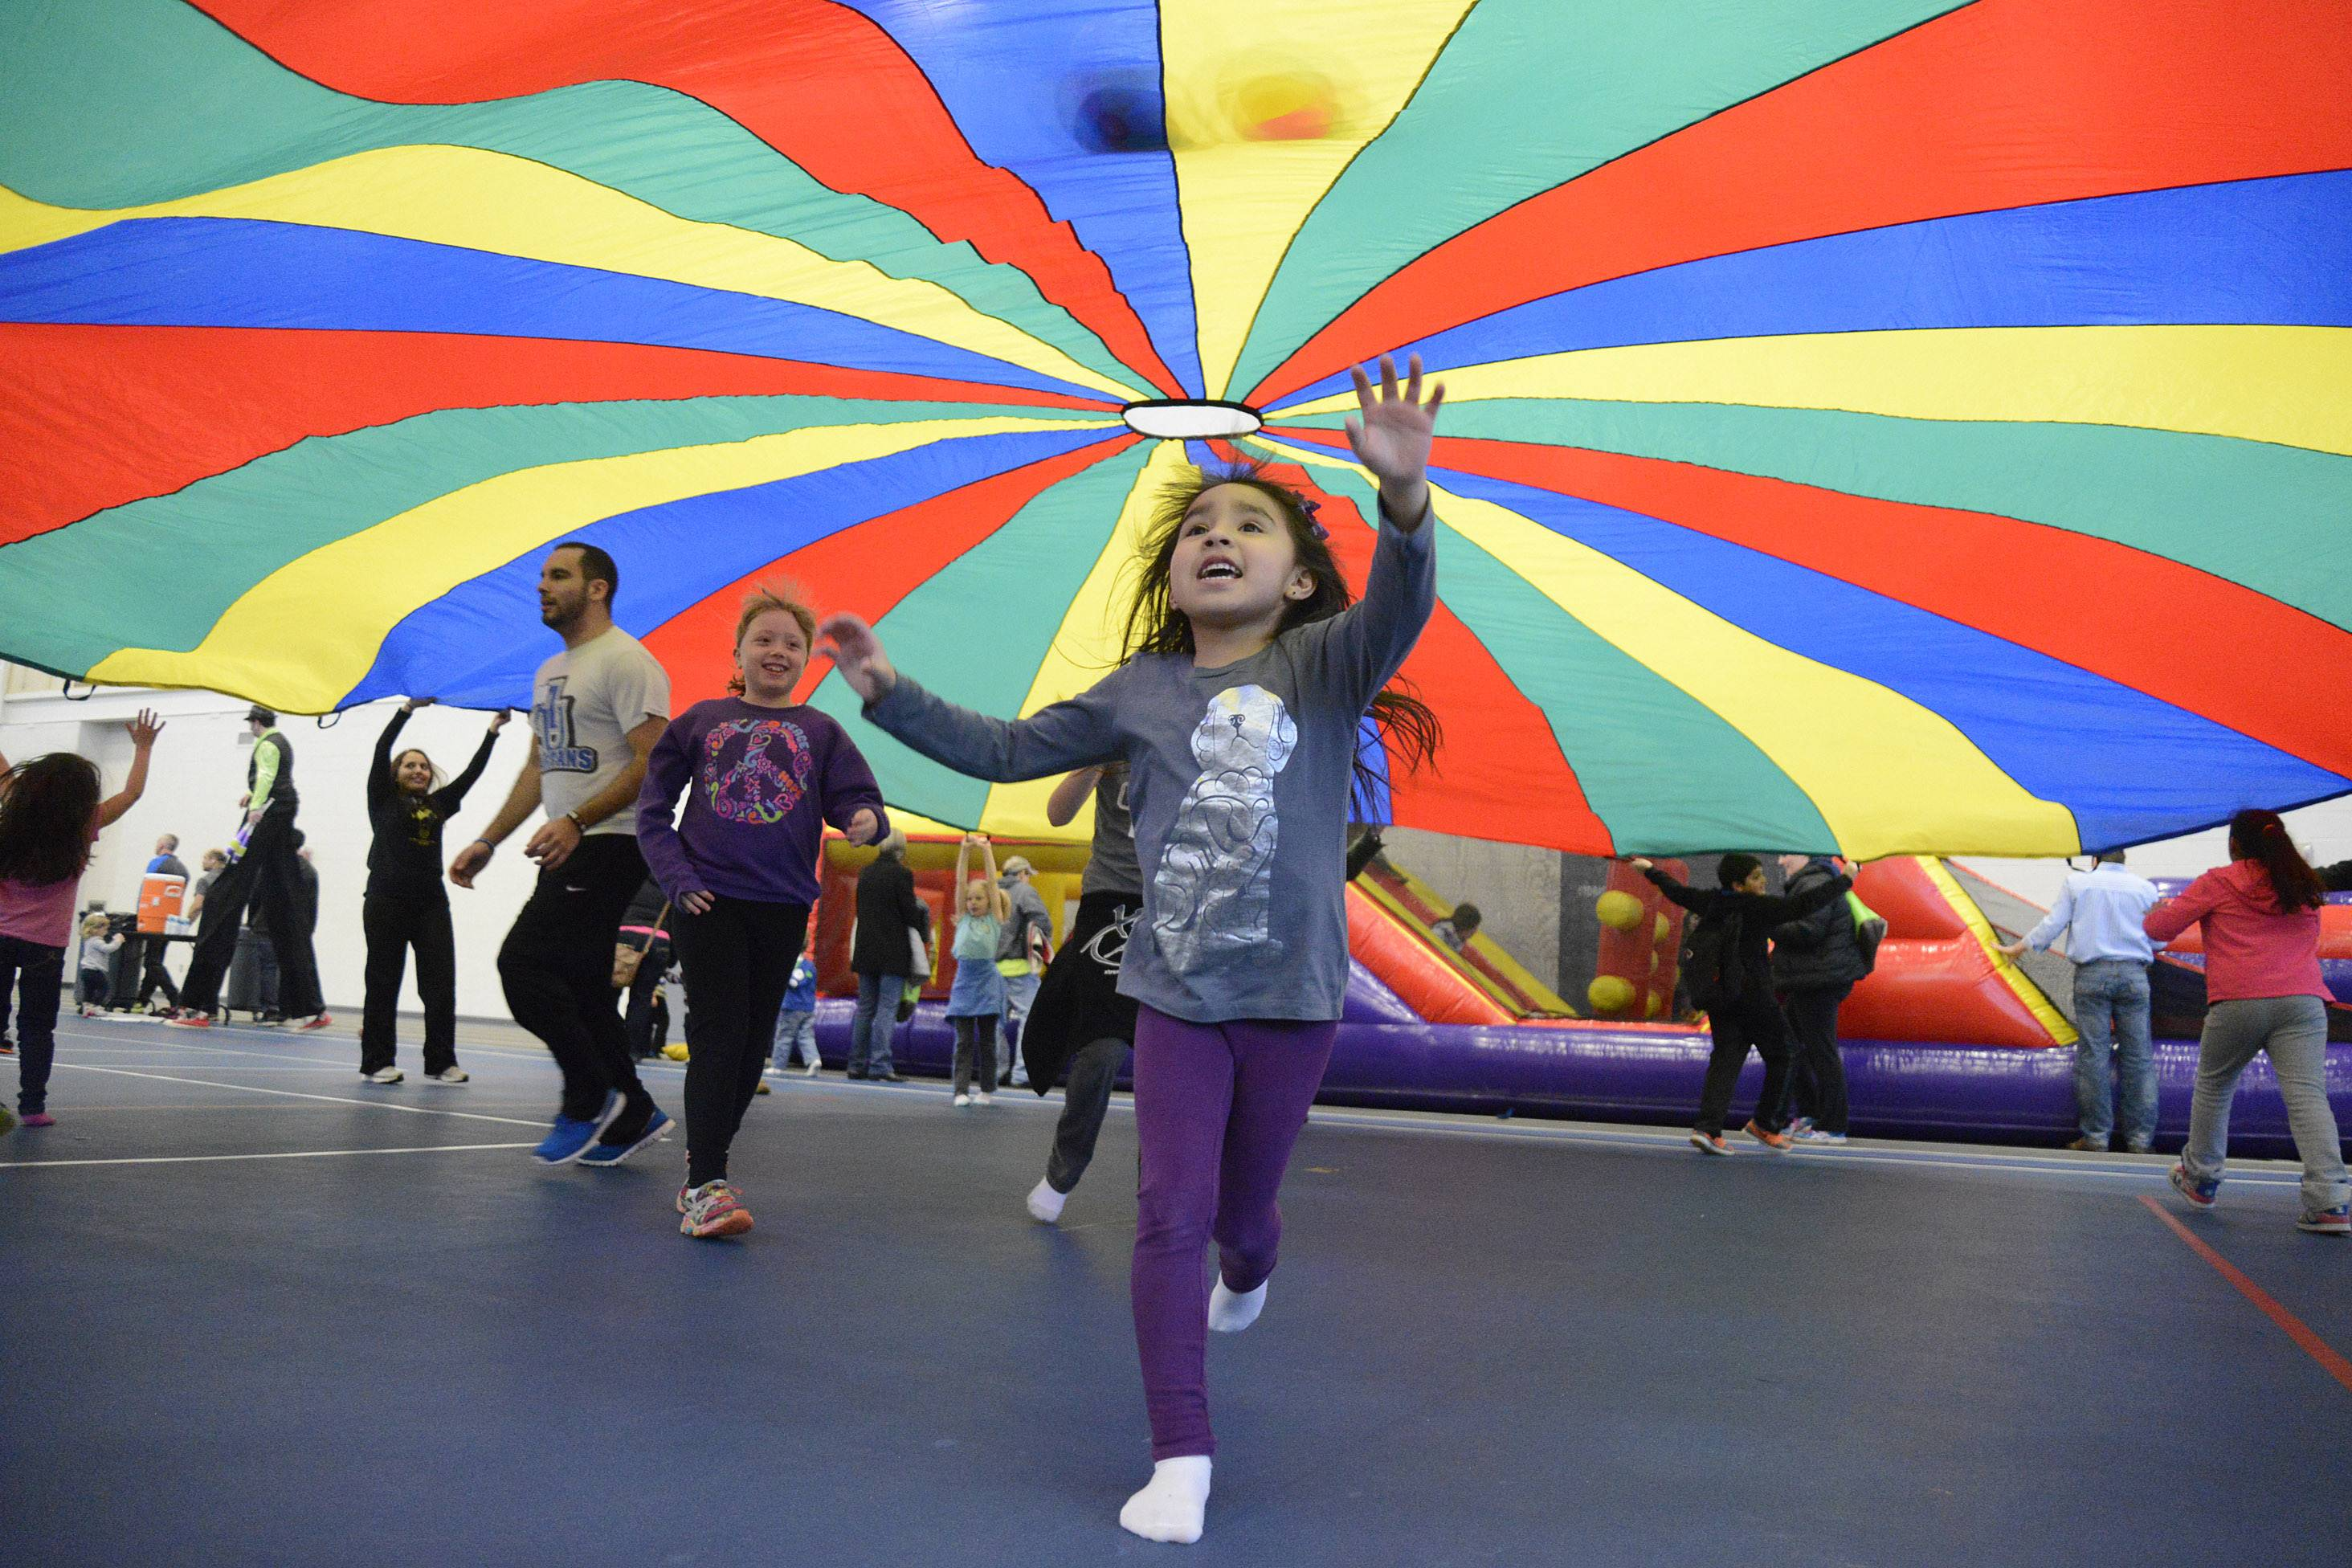 Alexa Bejarano, 5, of Aurora, runs to a yellow slice of color under the parachute activity at the annual Fitness Fun Fair for Kids at the Vaughn Athletic Center in Aurora on Saturday. The Bejarano family are members of the center and have been coming to the Fun Fair for the past three years.